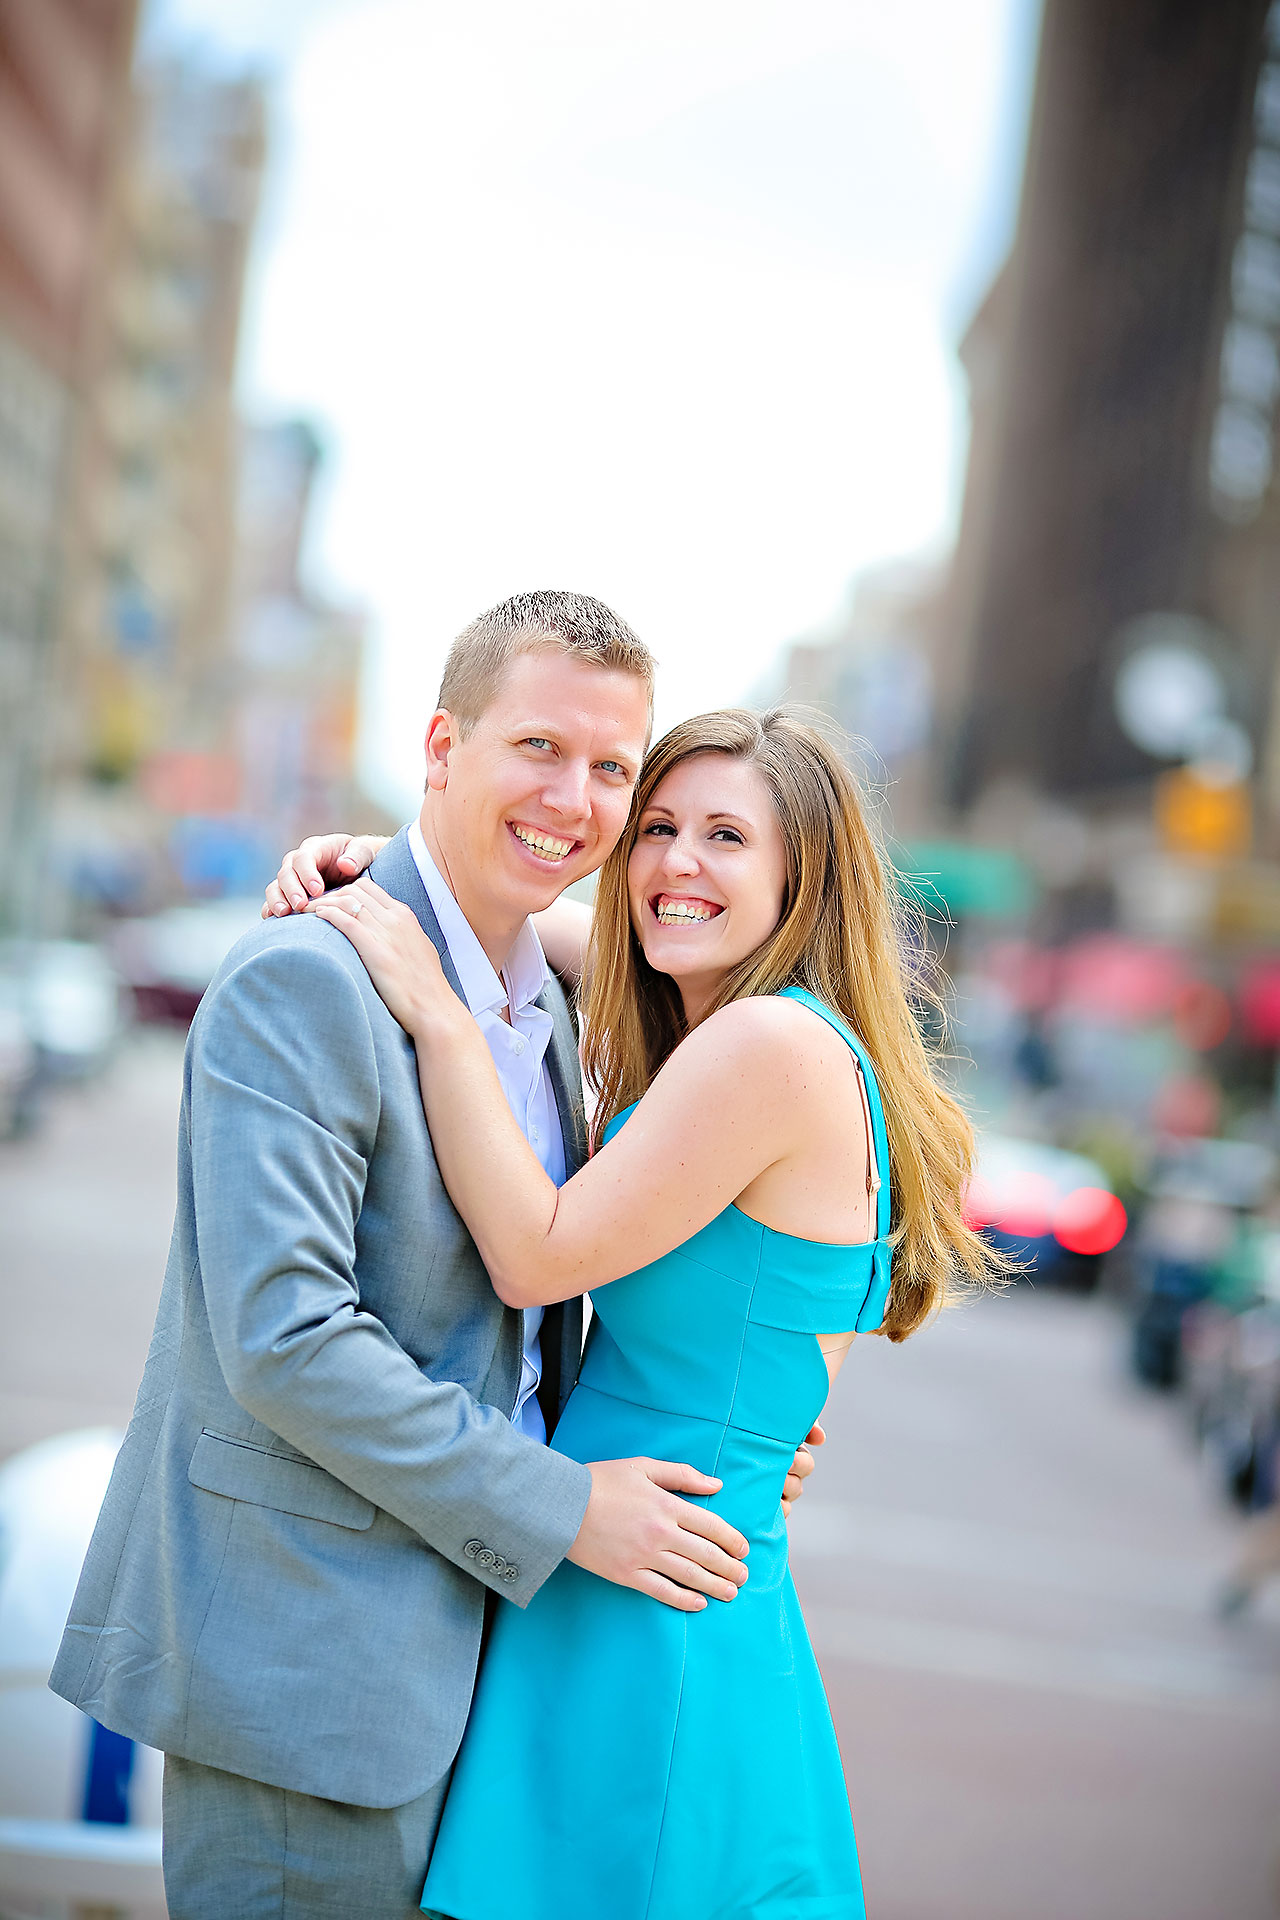 Chelsea Jeff Downtown Indy Engagement Session 029